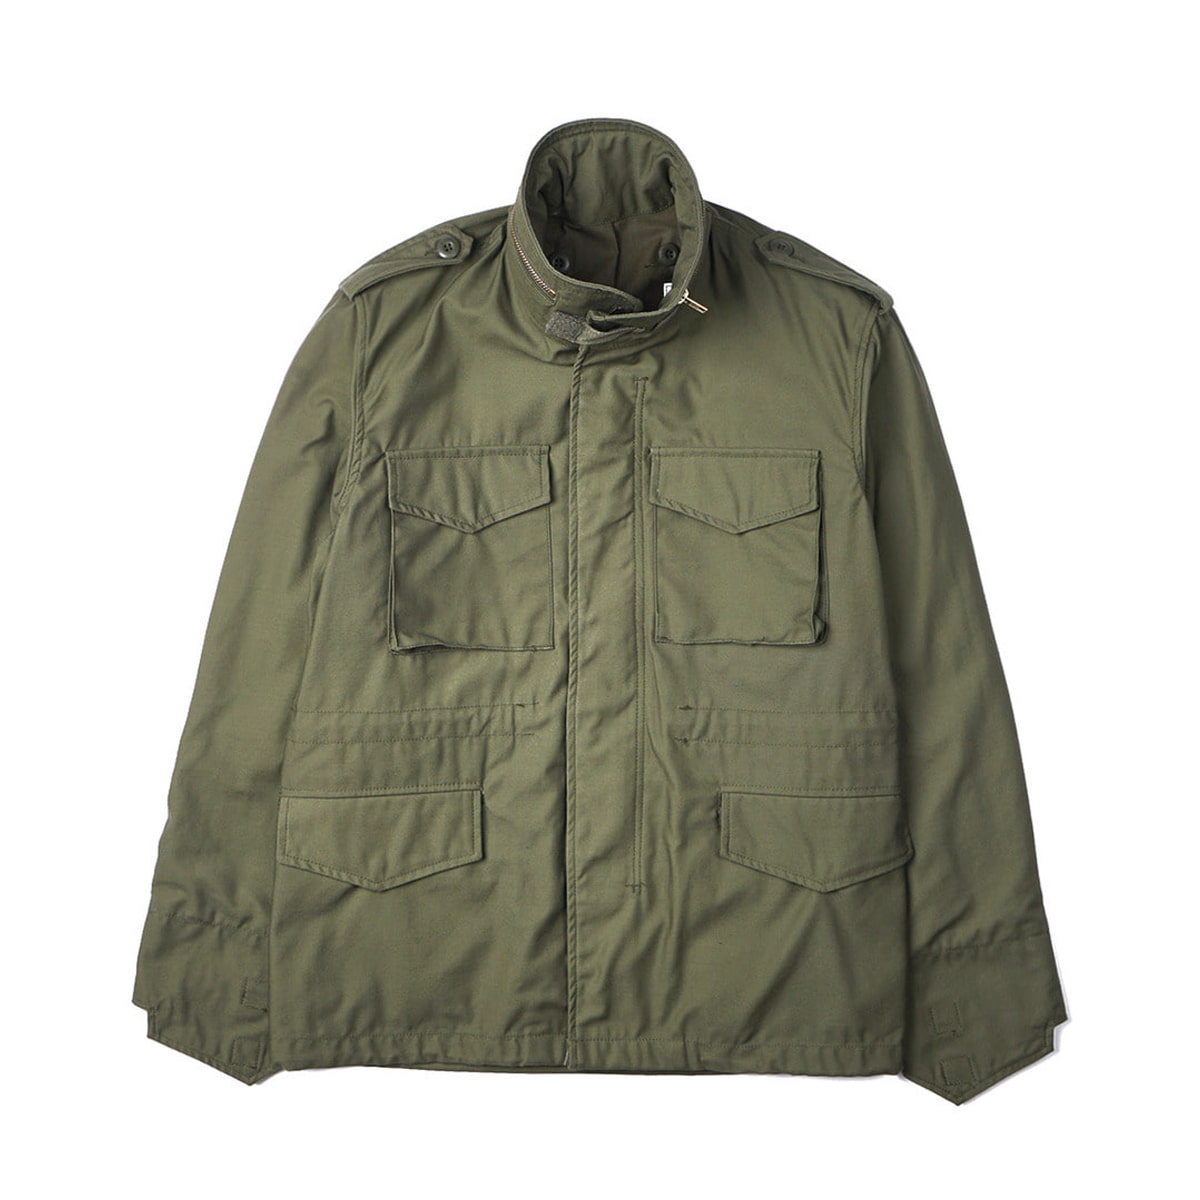 [YMCLKY] US TYPE M-65 FIELD JACKET 'OLIVE'